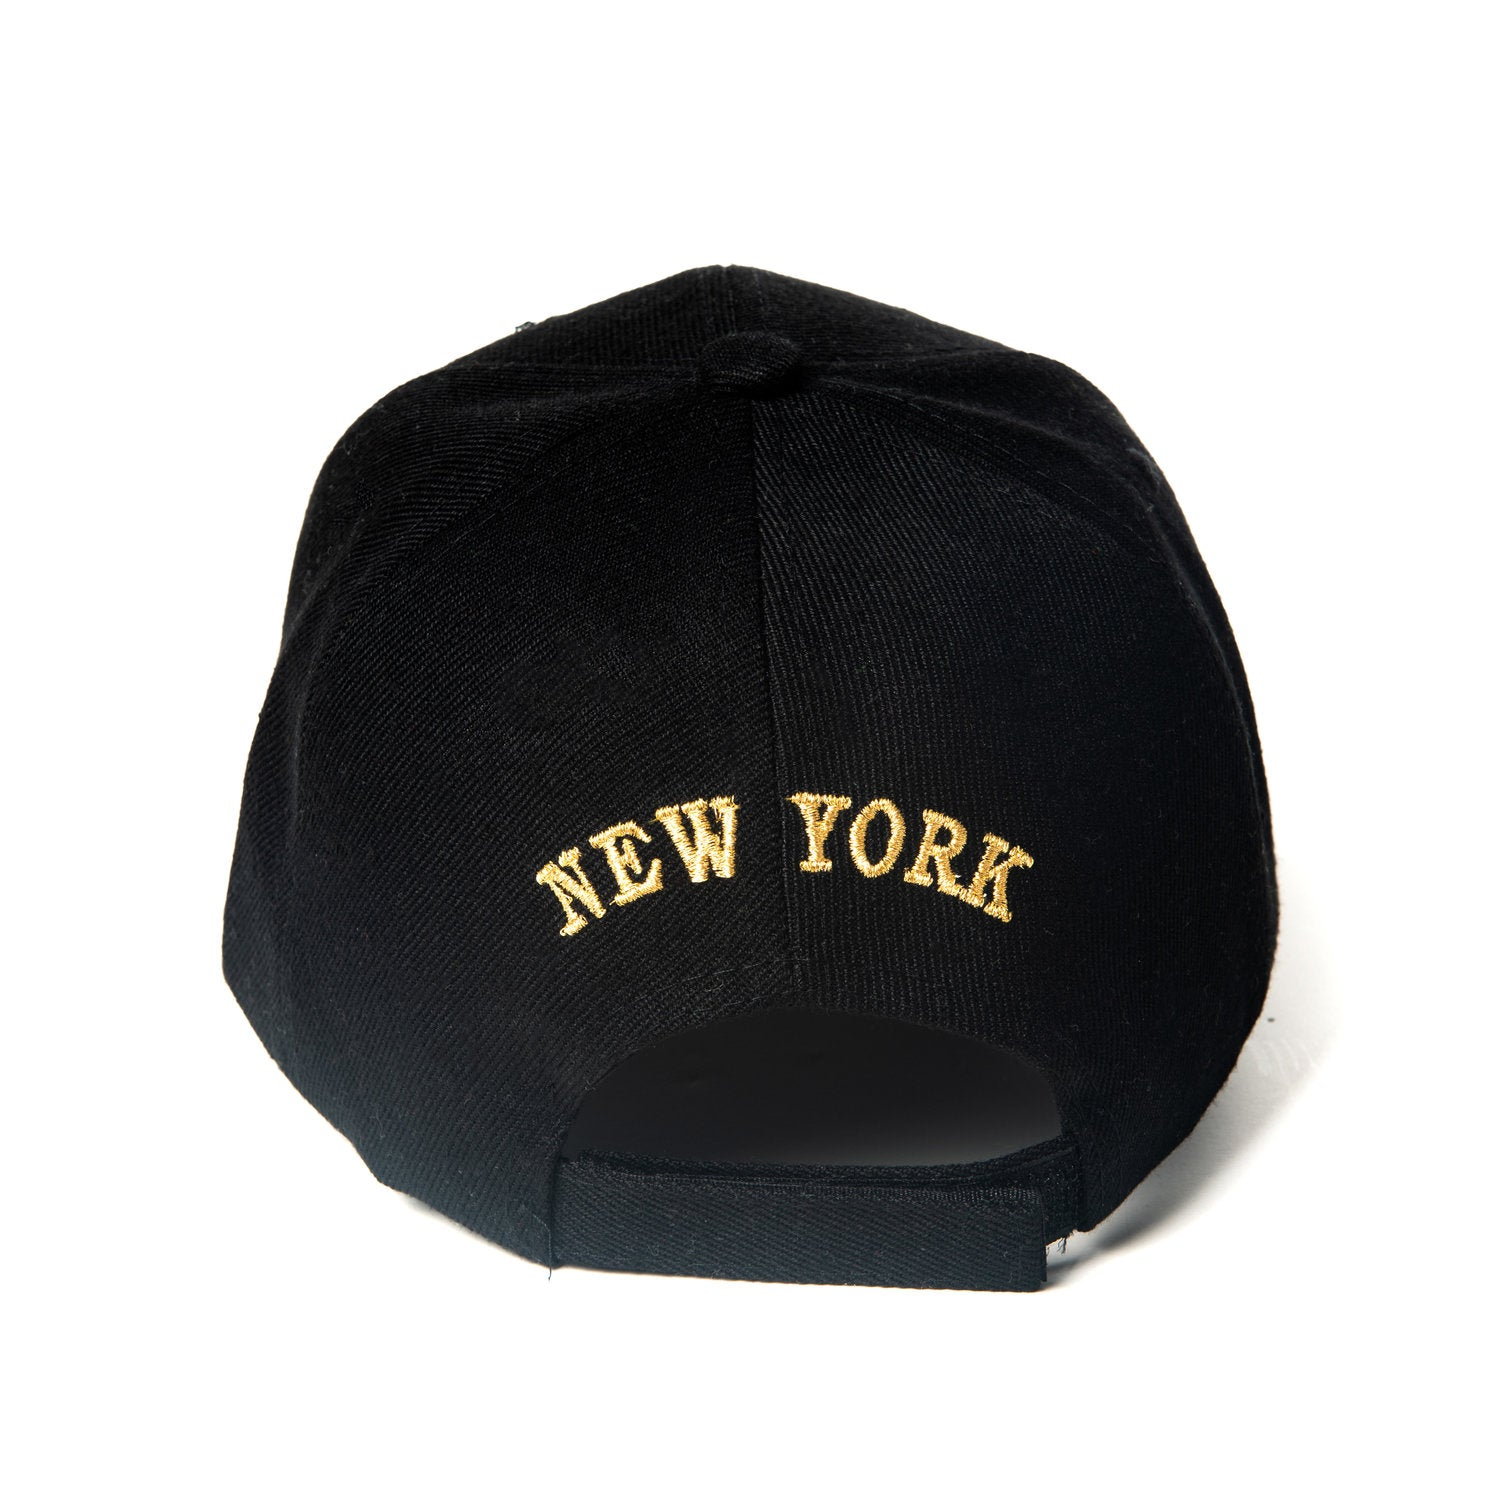 The Academy New York Logo Hat